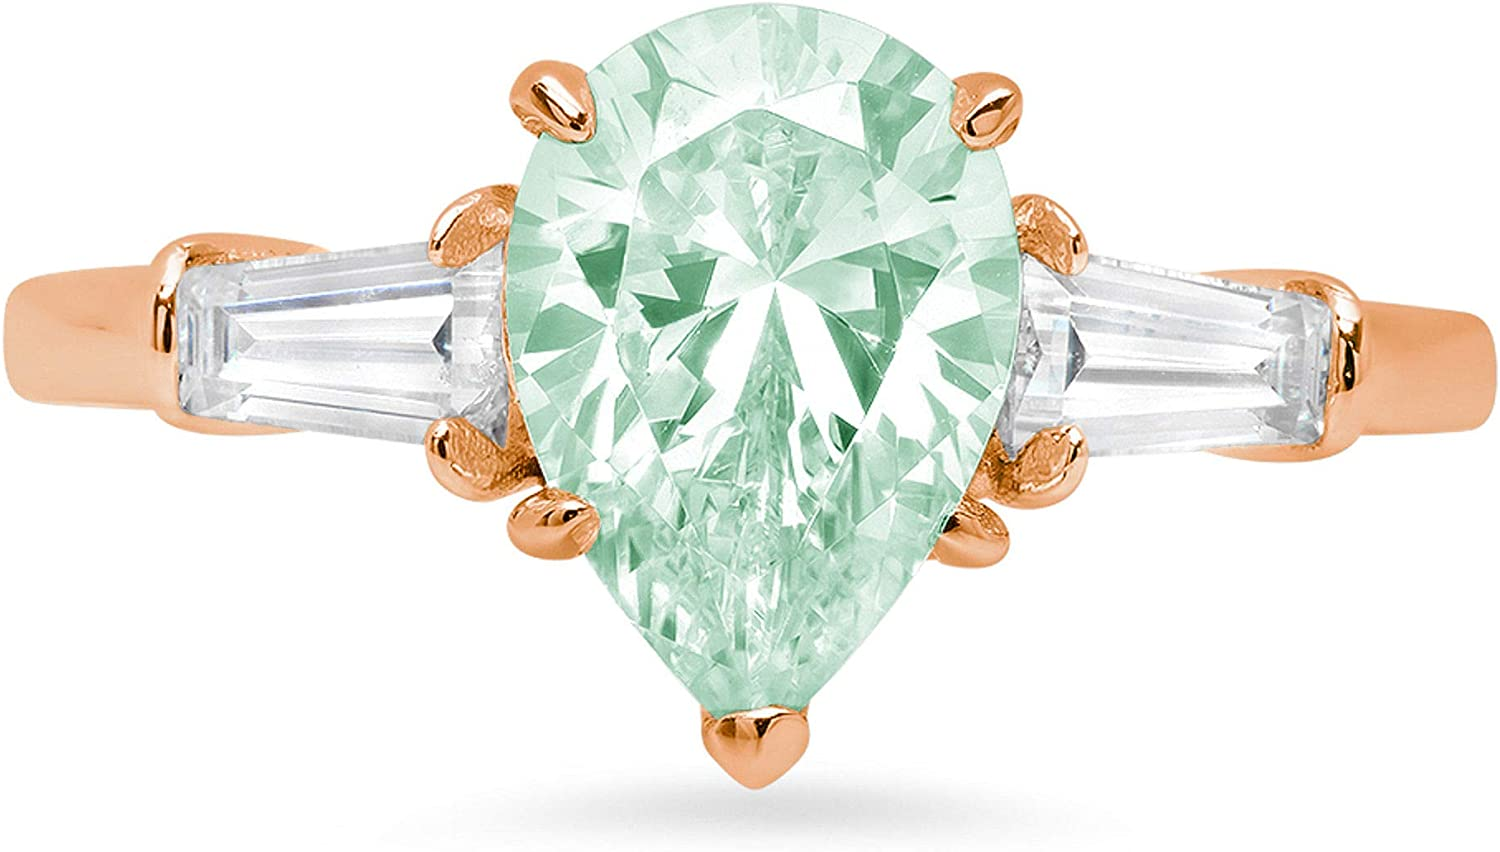 2.47ct Pear Baguette cut 3 stone Solitaire with Accent Light Sea Green Simulated Diamond CZ VVS1 Designer Modern Statement Ring Solid 14k Pink Rose Gold Clara Pucci